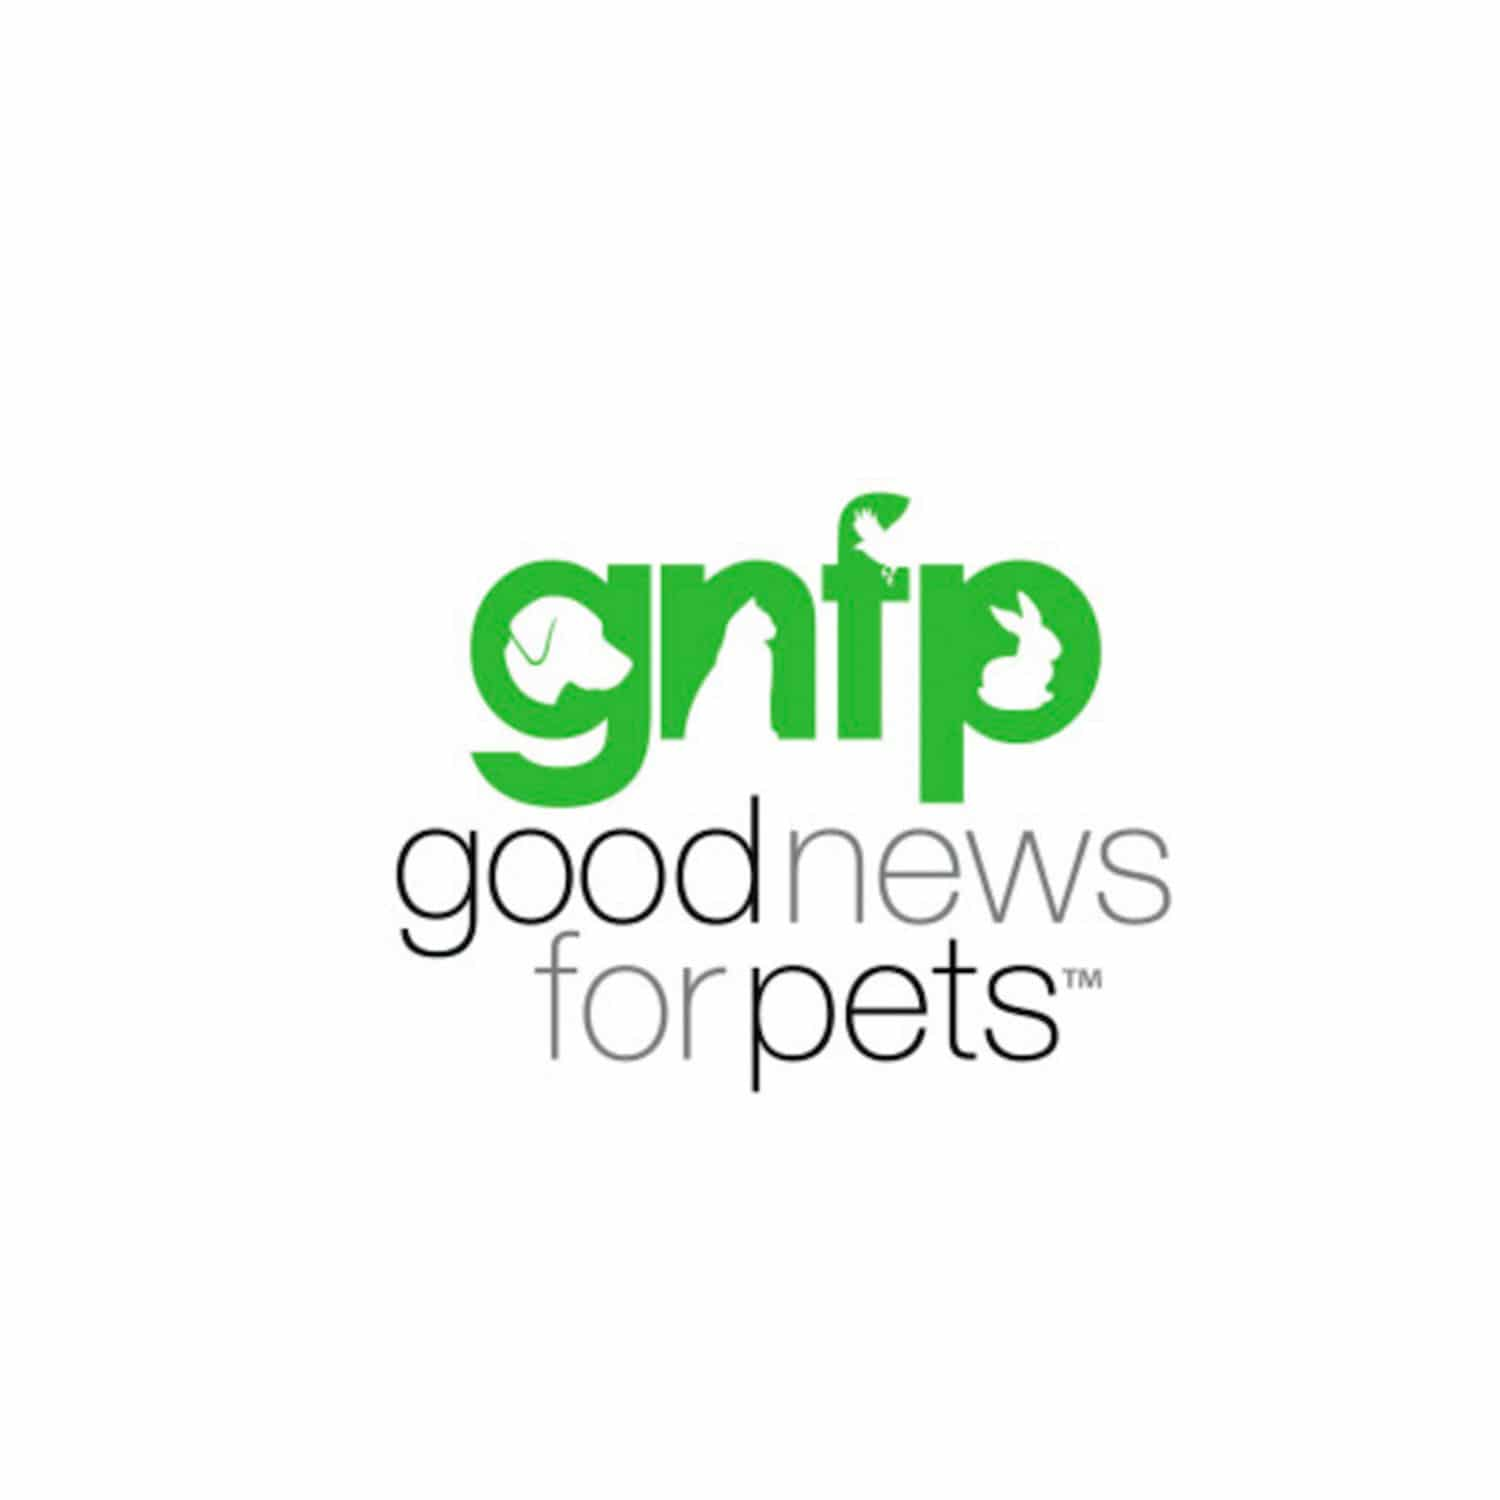 Pet news website celebrating two decades of sharing good news for pets